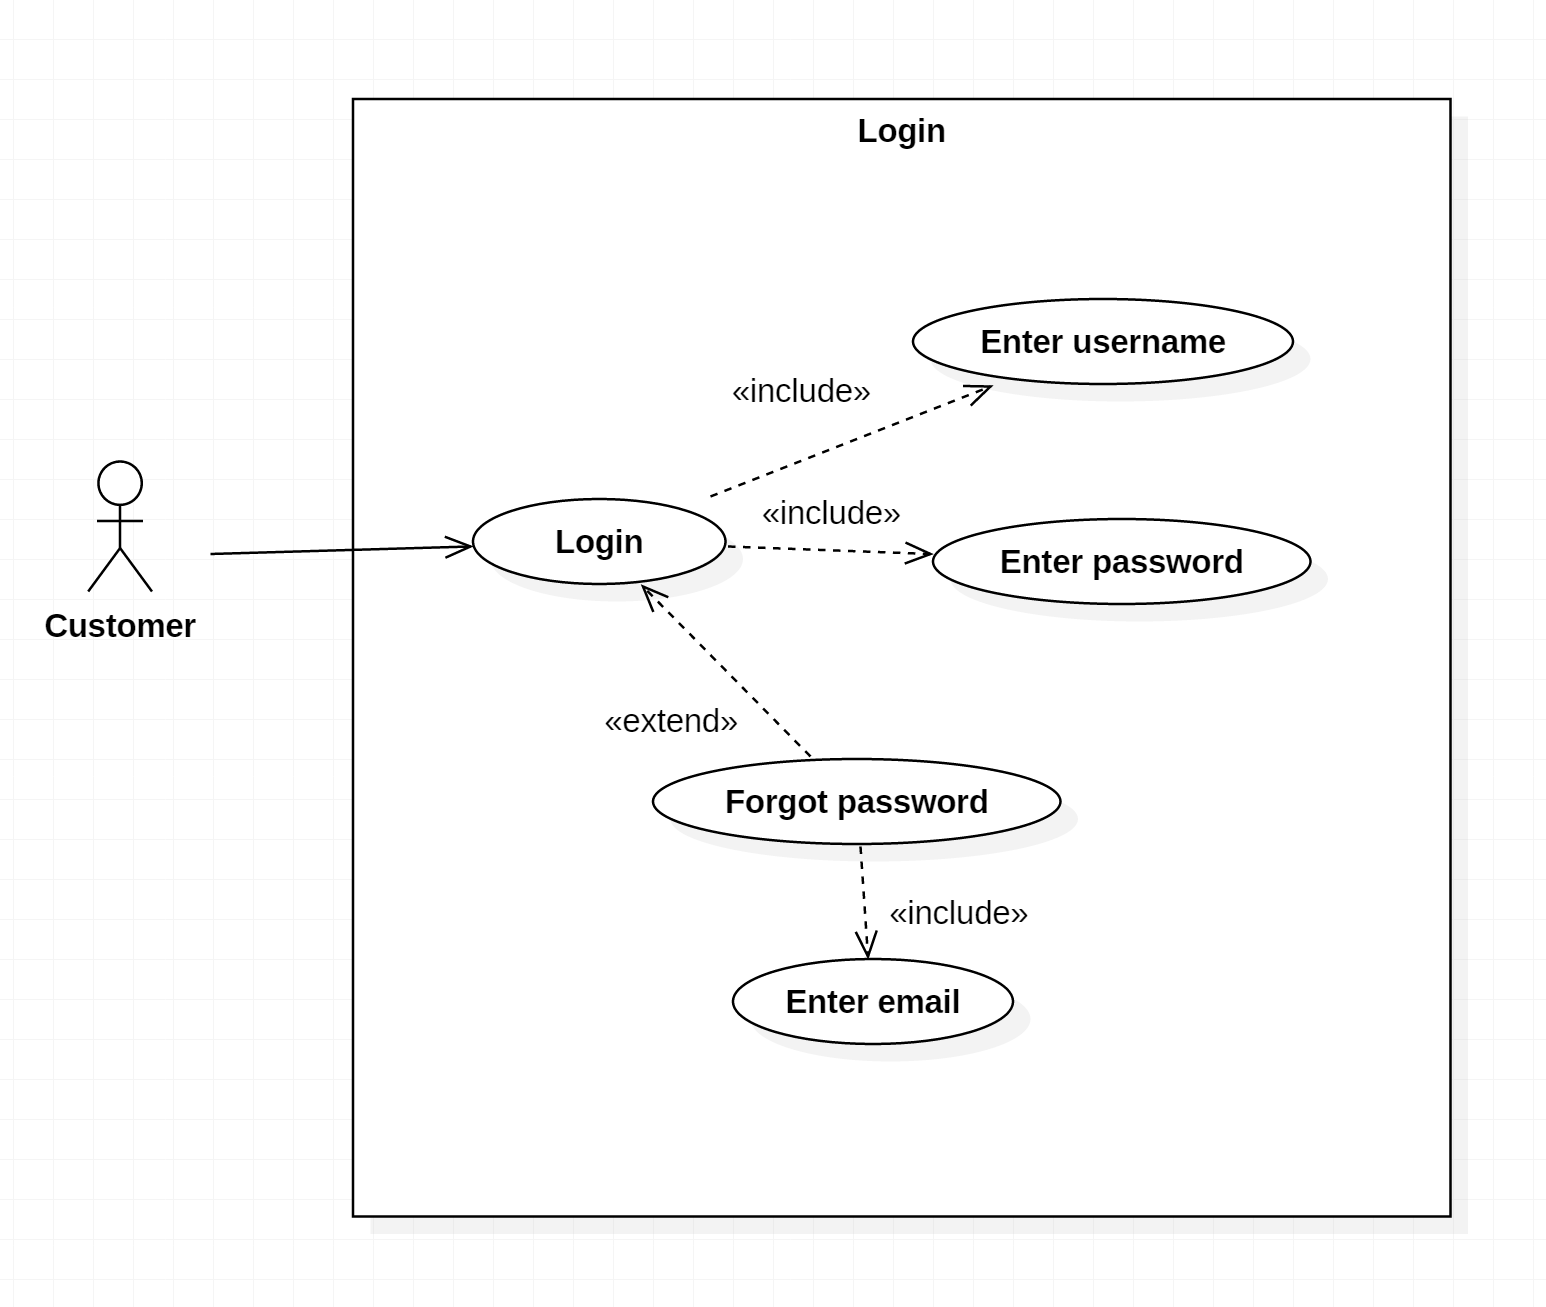 hight resolution of use case diagram simple login logic stack overflow diagram logic login